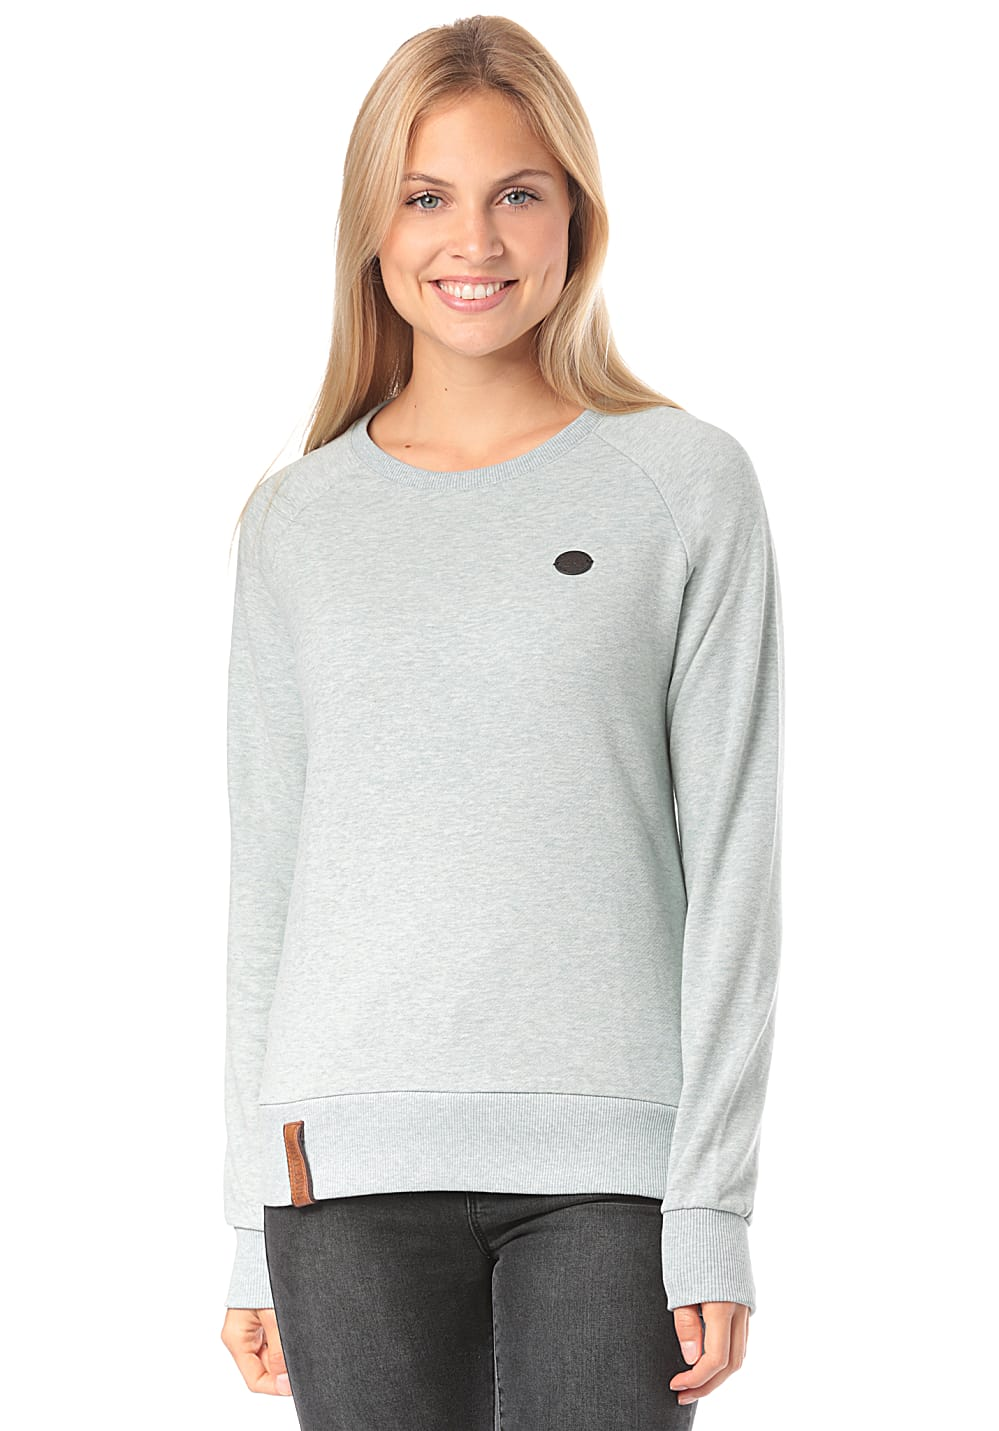 NAKETANO Fick Und Fotzi Sweatshirt for Women Grey